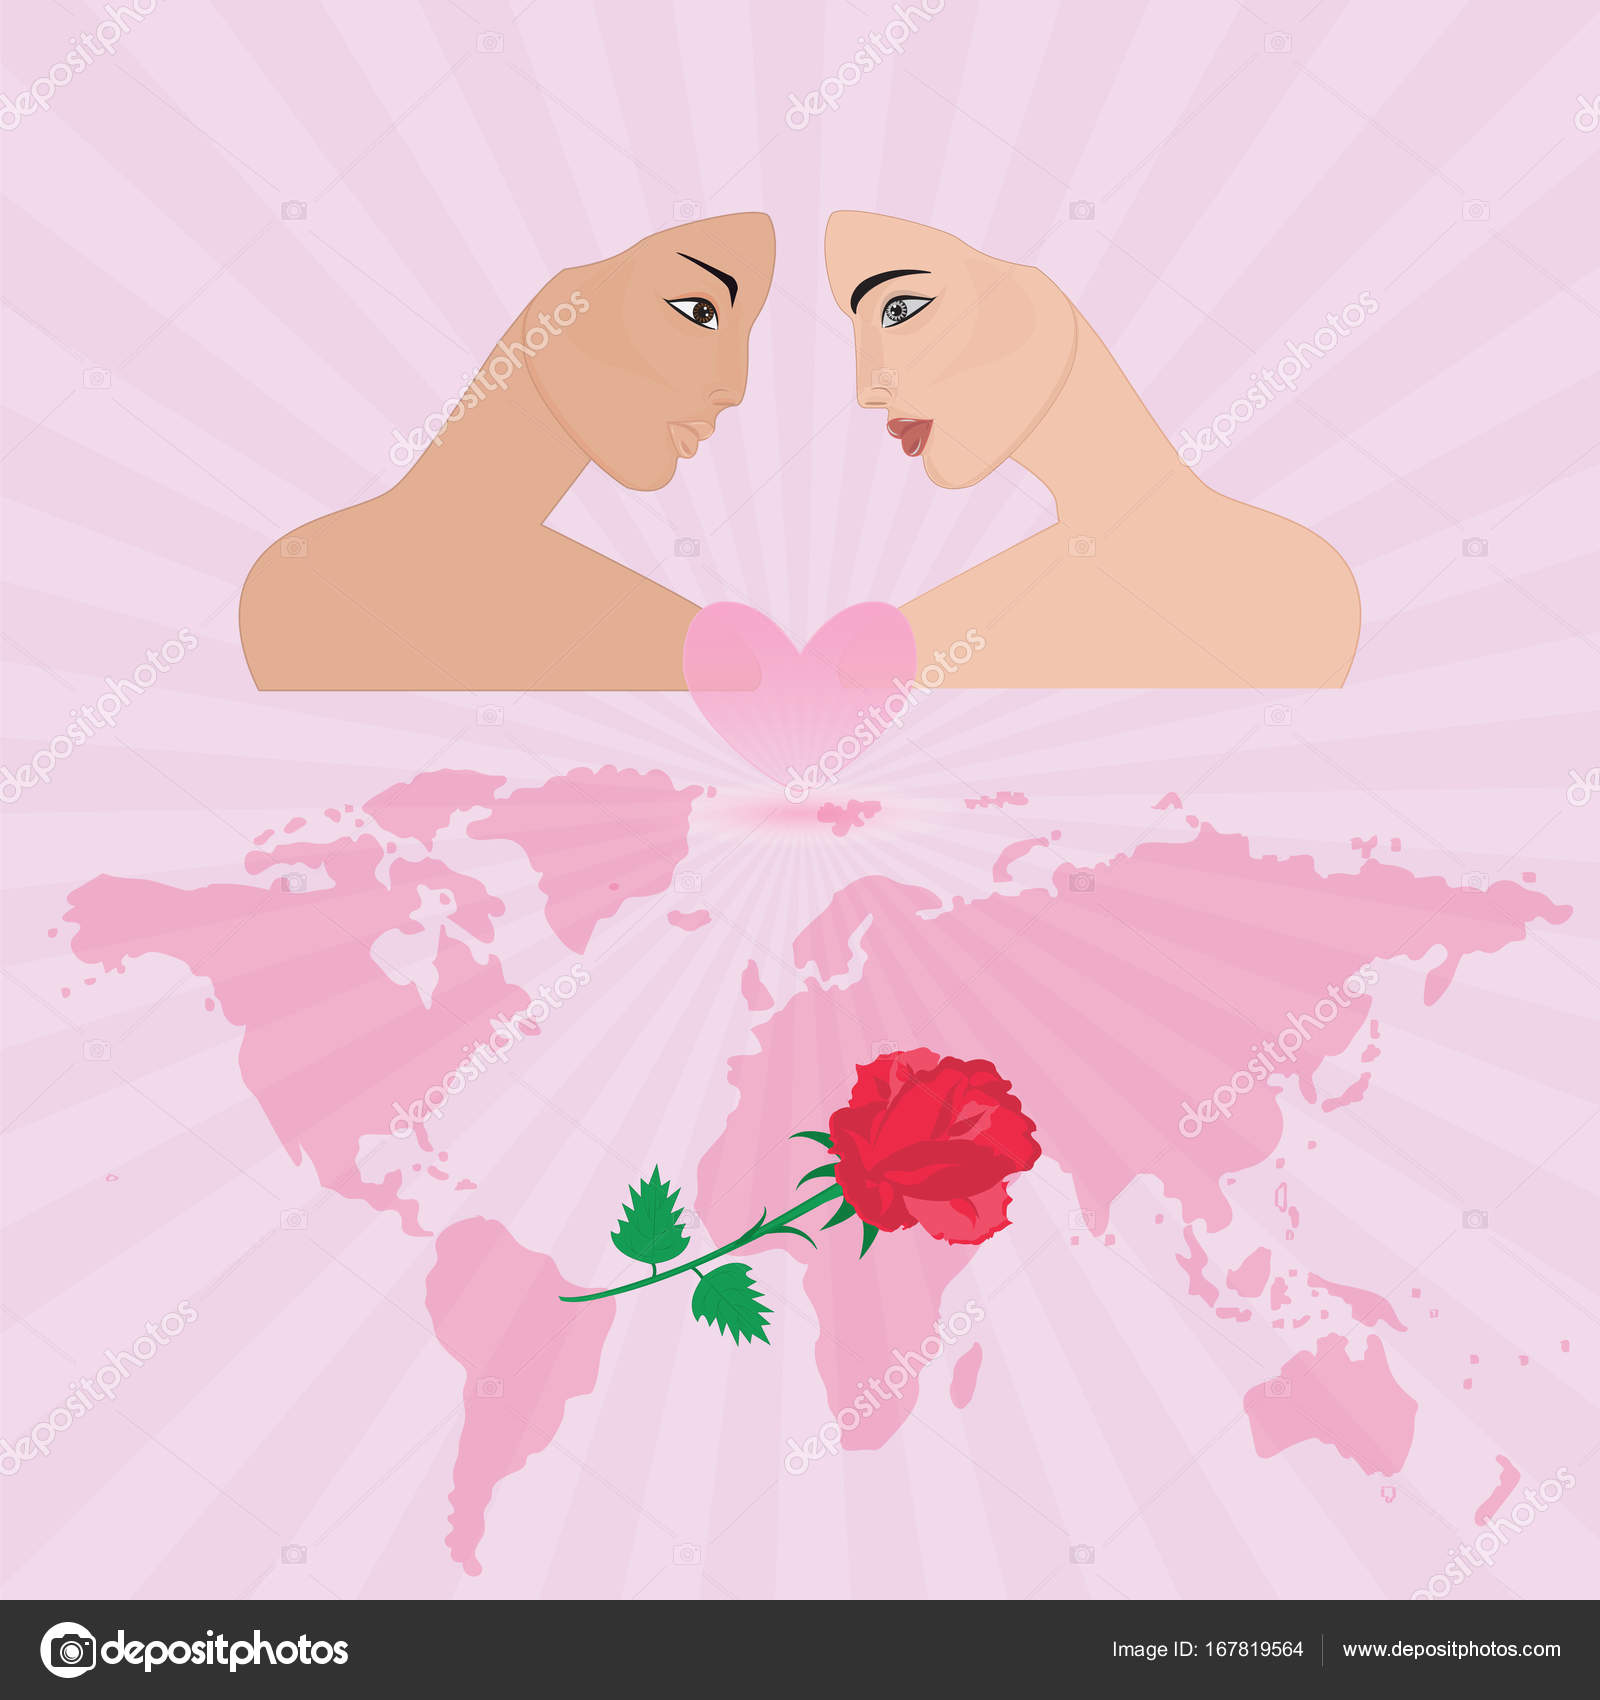 Couple in love face young girl pink background rays of the rising couple in love face young girl pink background rays of the rising sun world map rose art creative modern vector illustration postcard congratulatory poster gumiabroncs Images